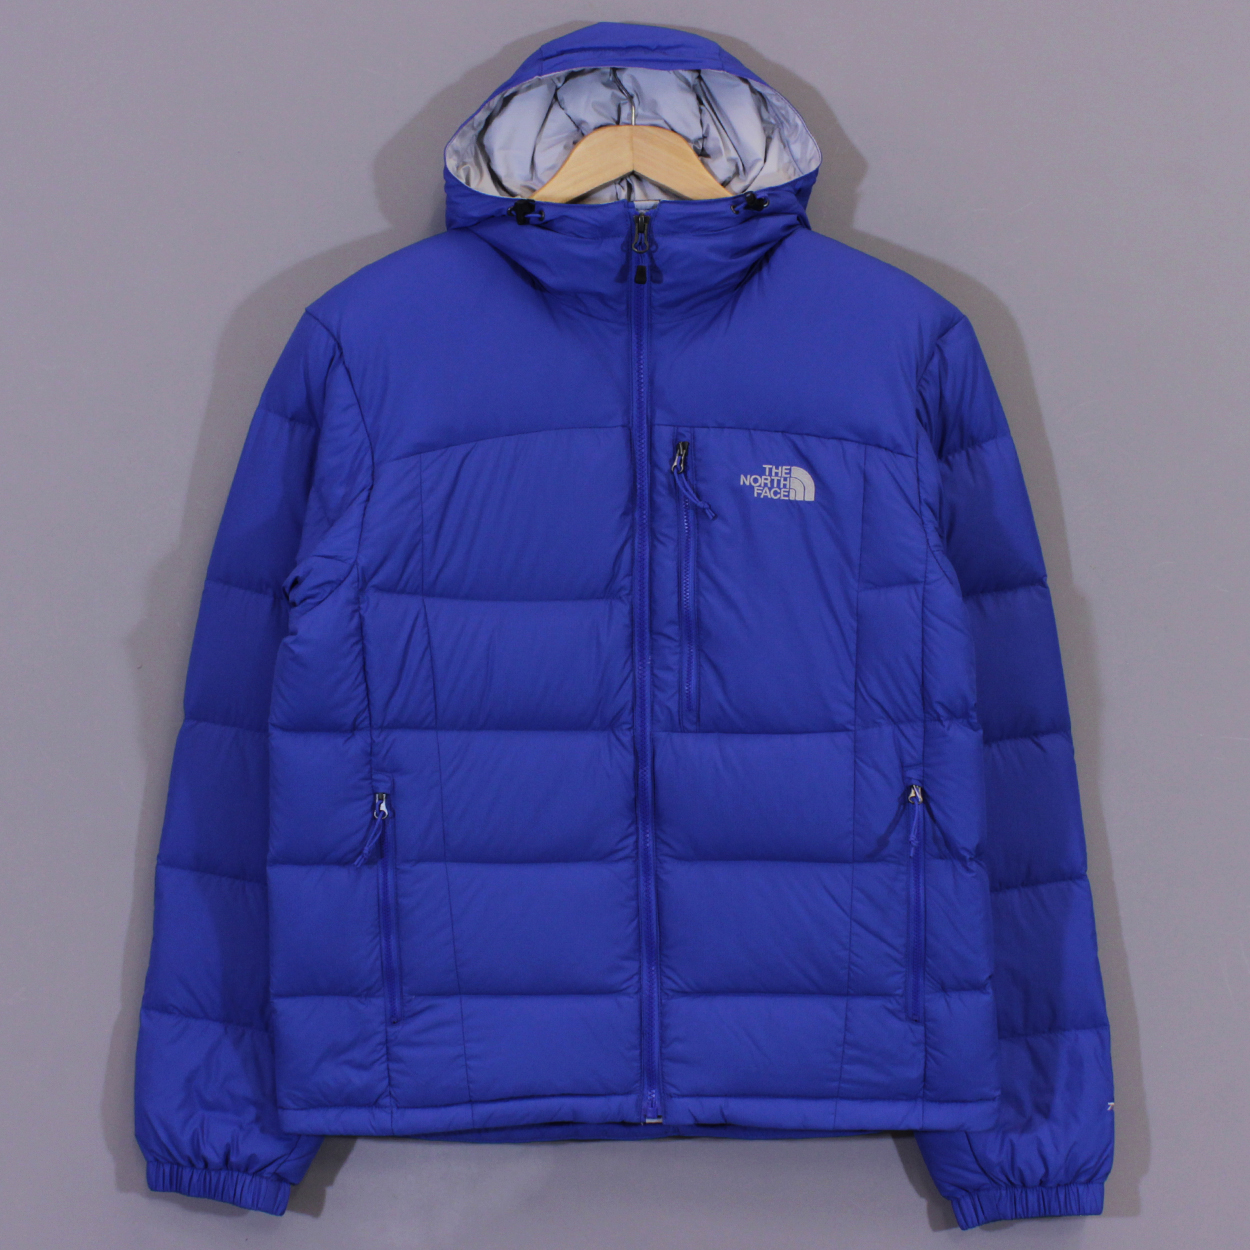 5544a4de4 The North Face Mens Argento Hooded Down Jacket Nautical Blue £154.00